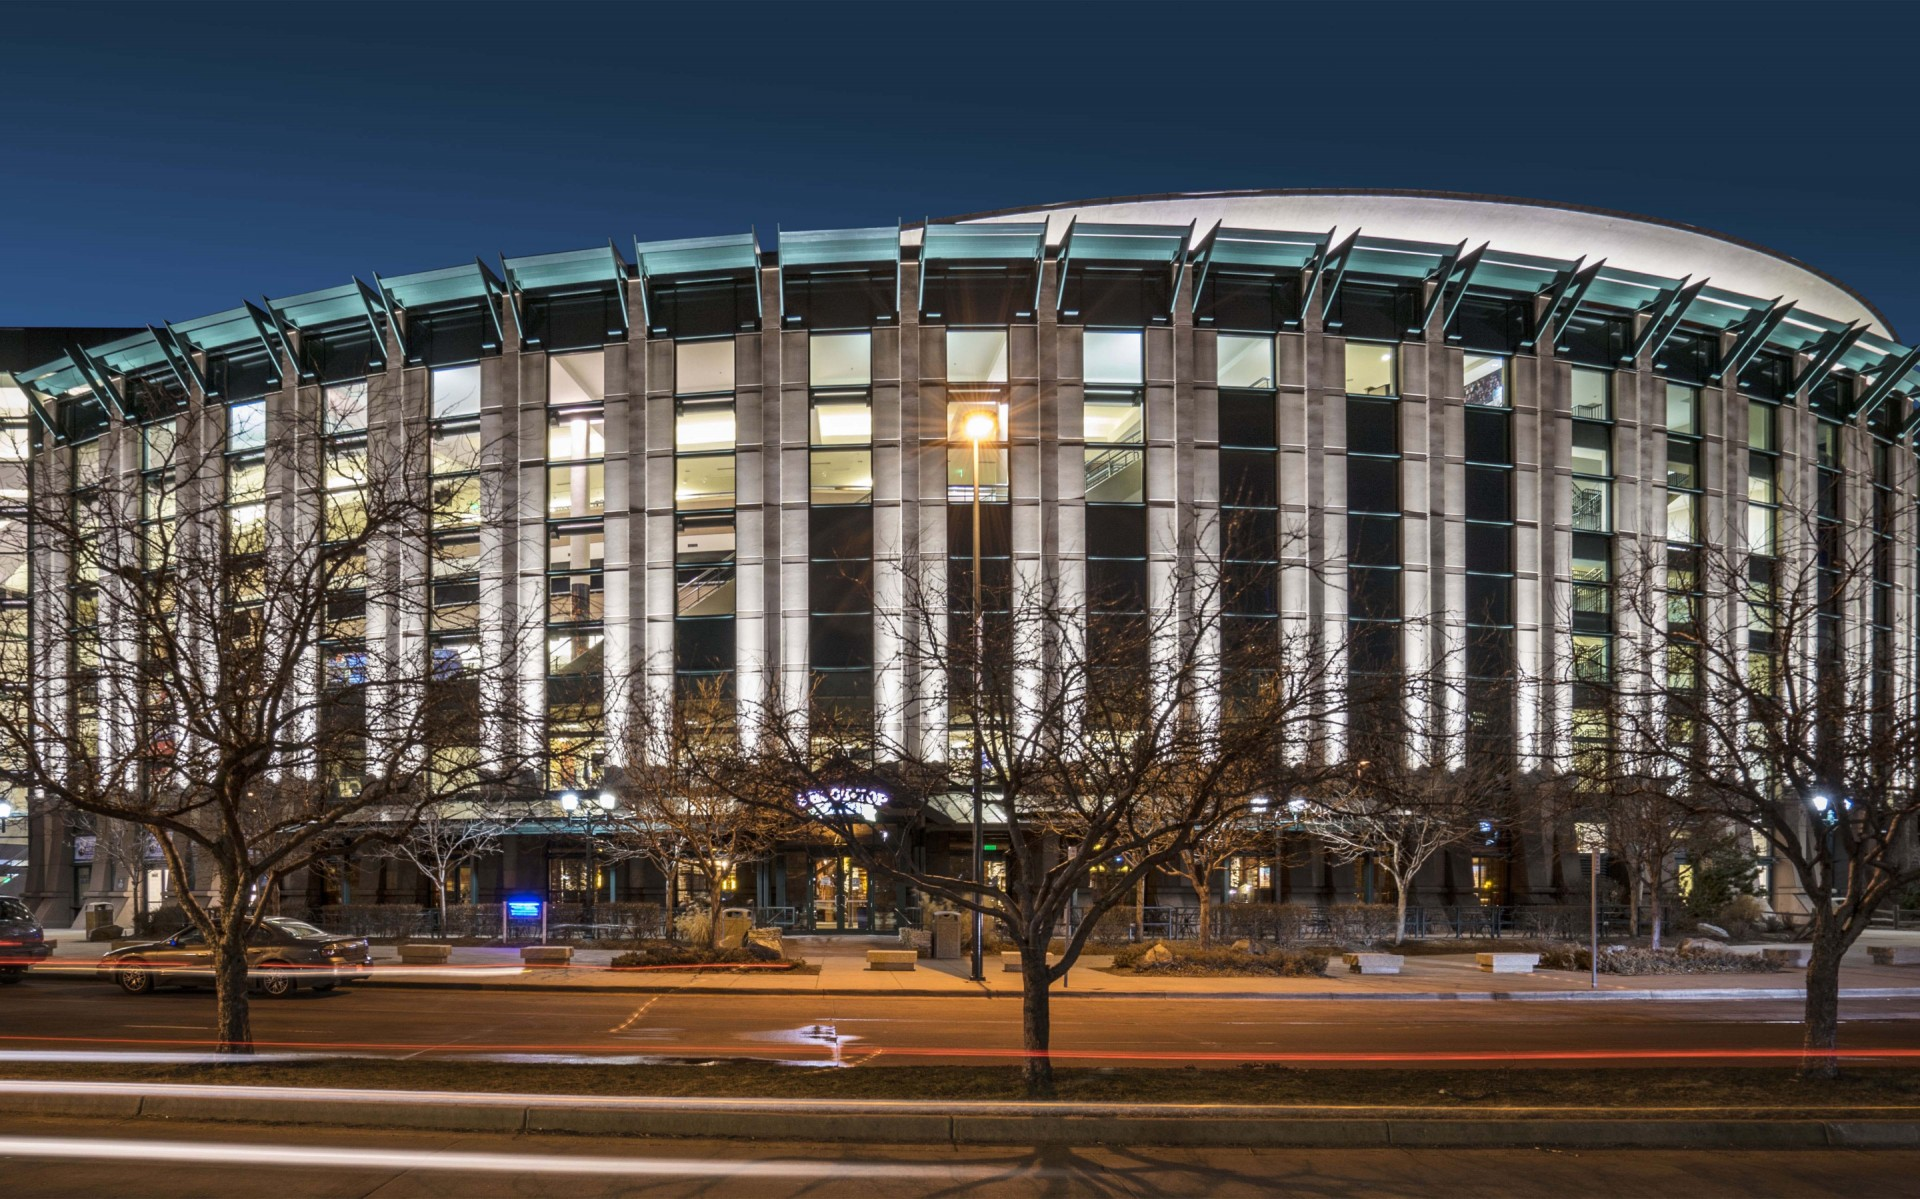 Opening its doors in the fall of 1999, the Pepsi Center hosts over 200 events every year.  – Sam Koerbel